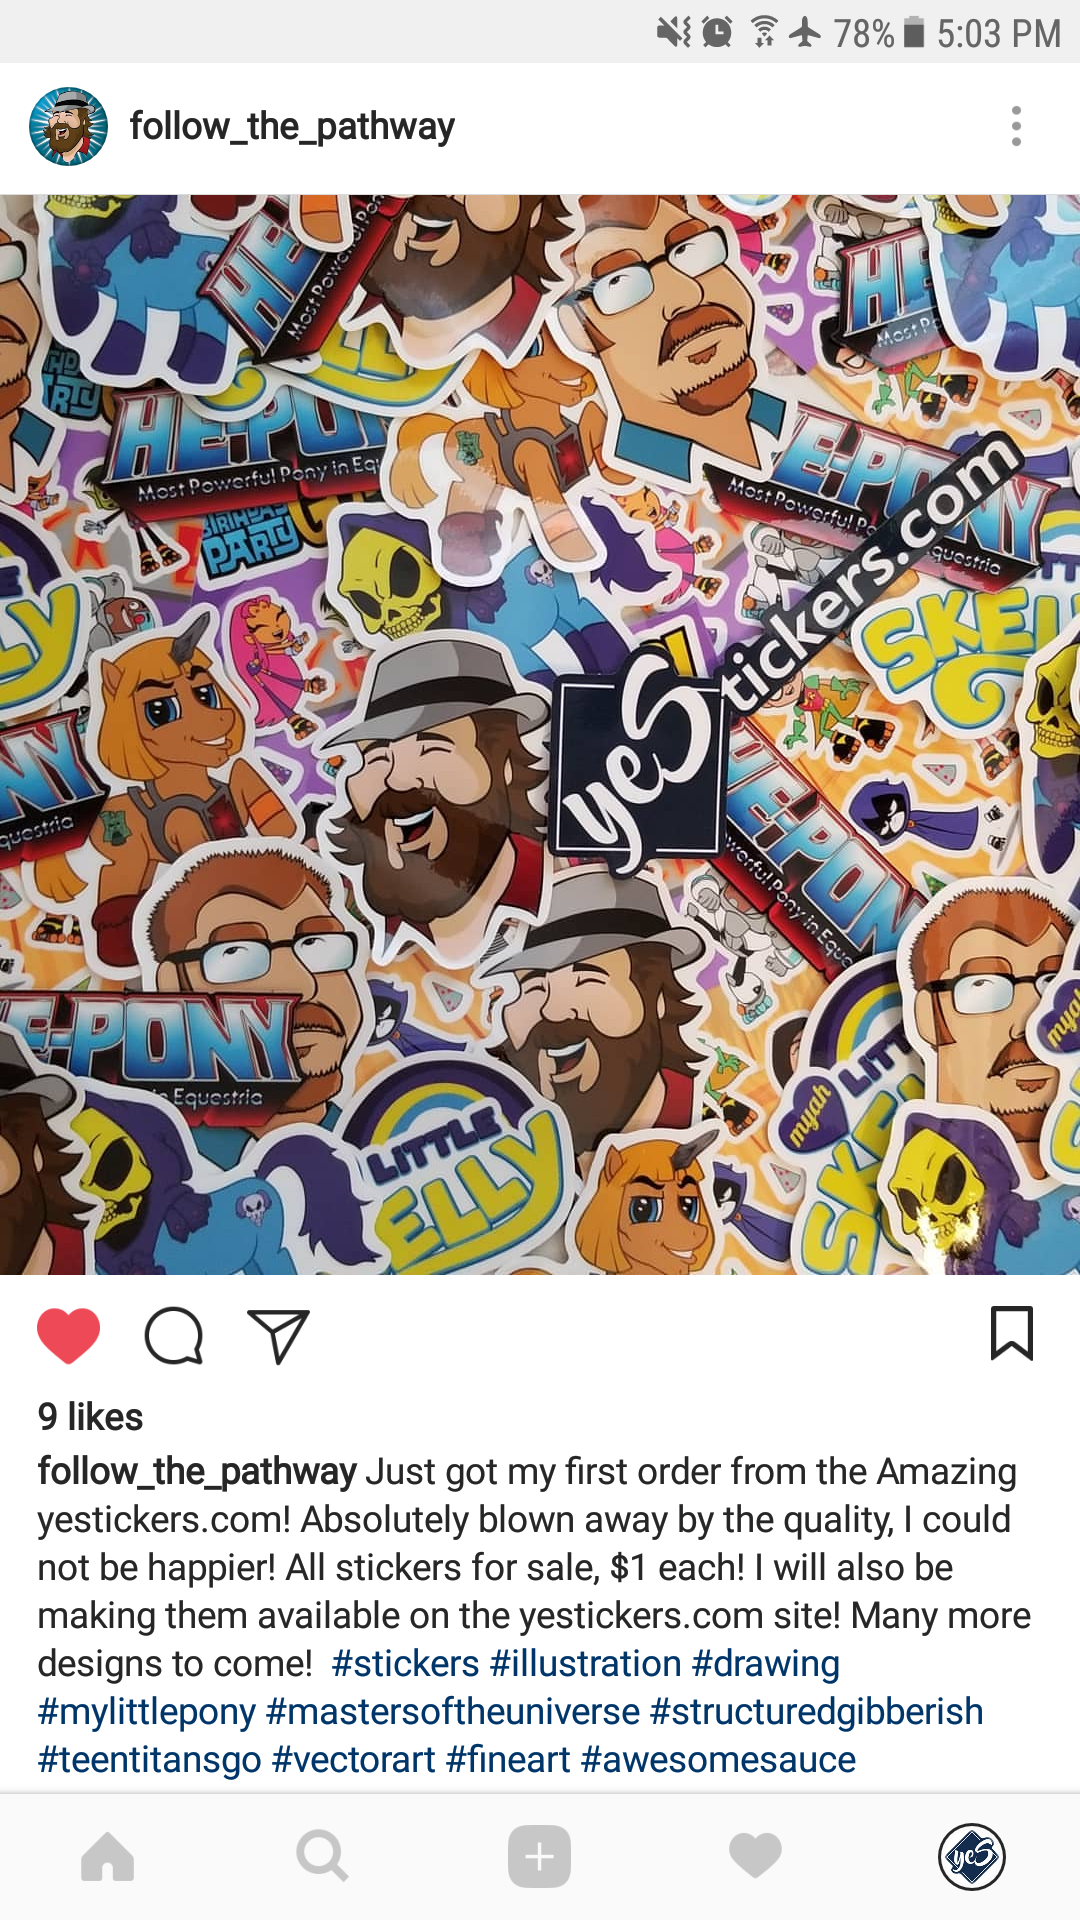 Custom stickers sell your own